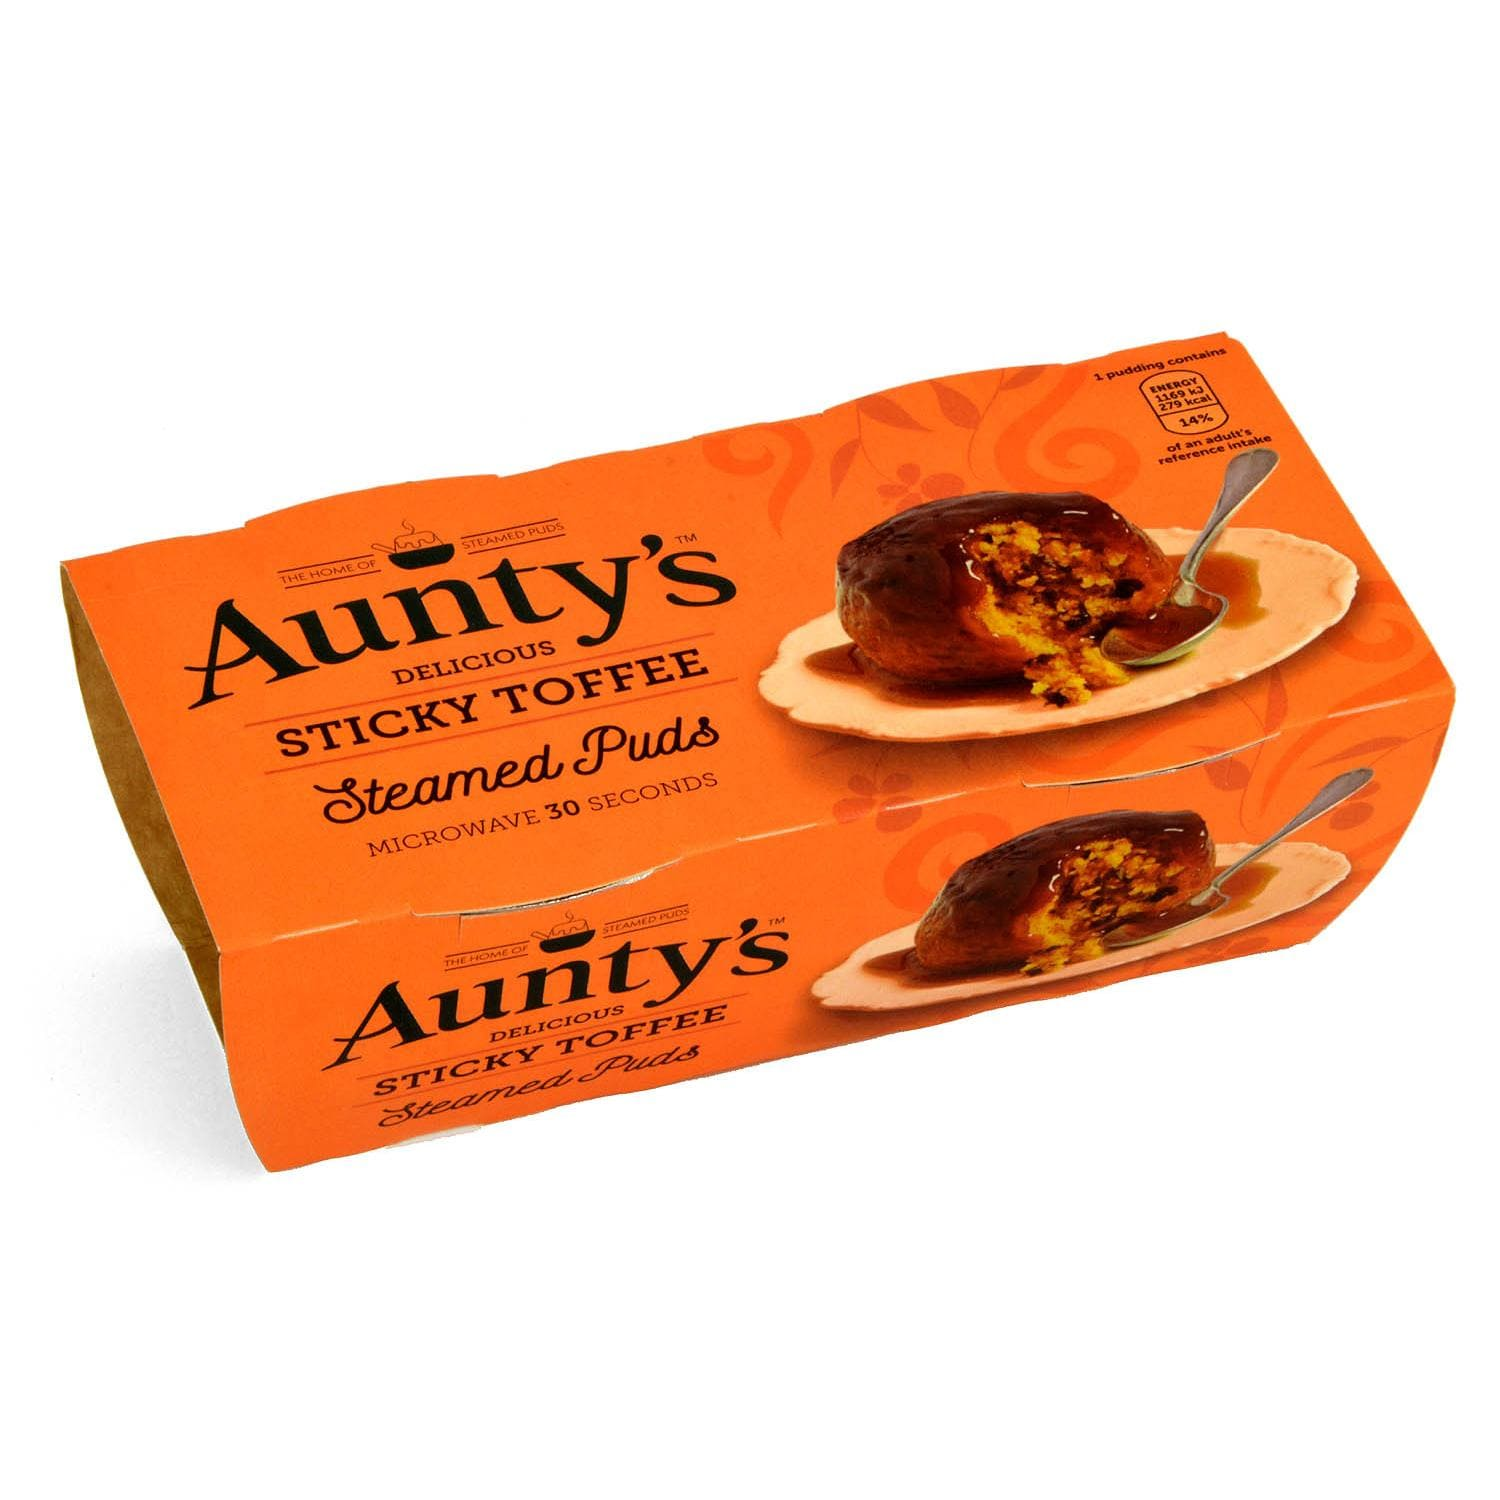 Aunty´s Sticky Toffee Sauce Steamed Puddings - Dessert-Kuchen mit Toffee-Soße